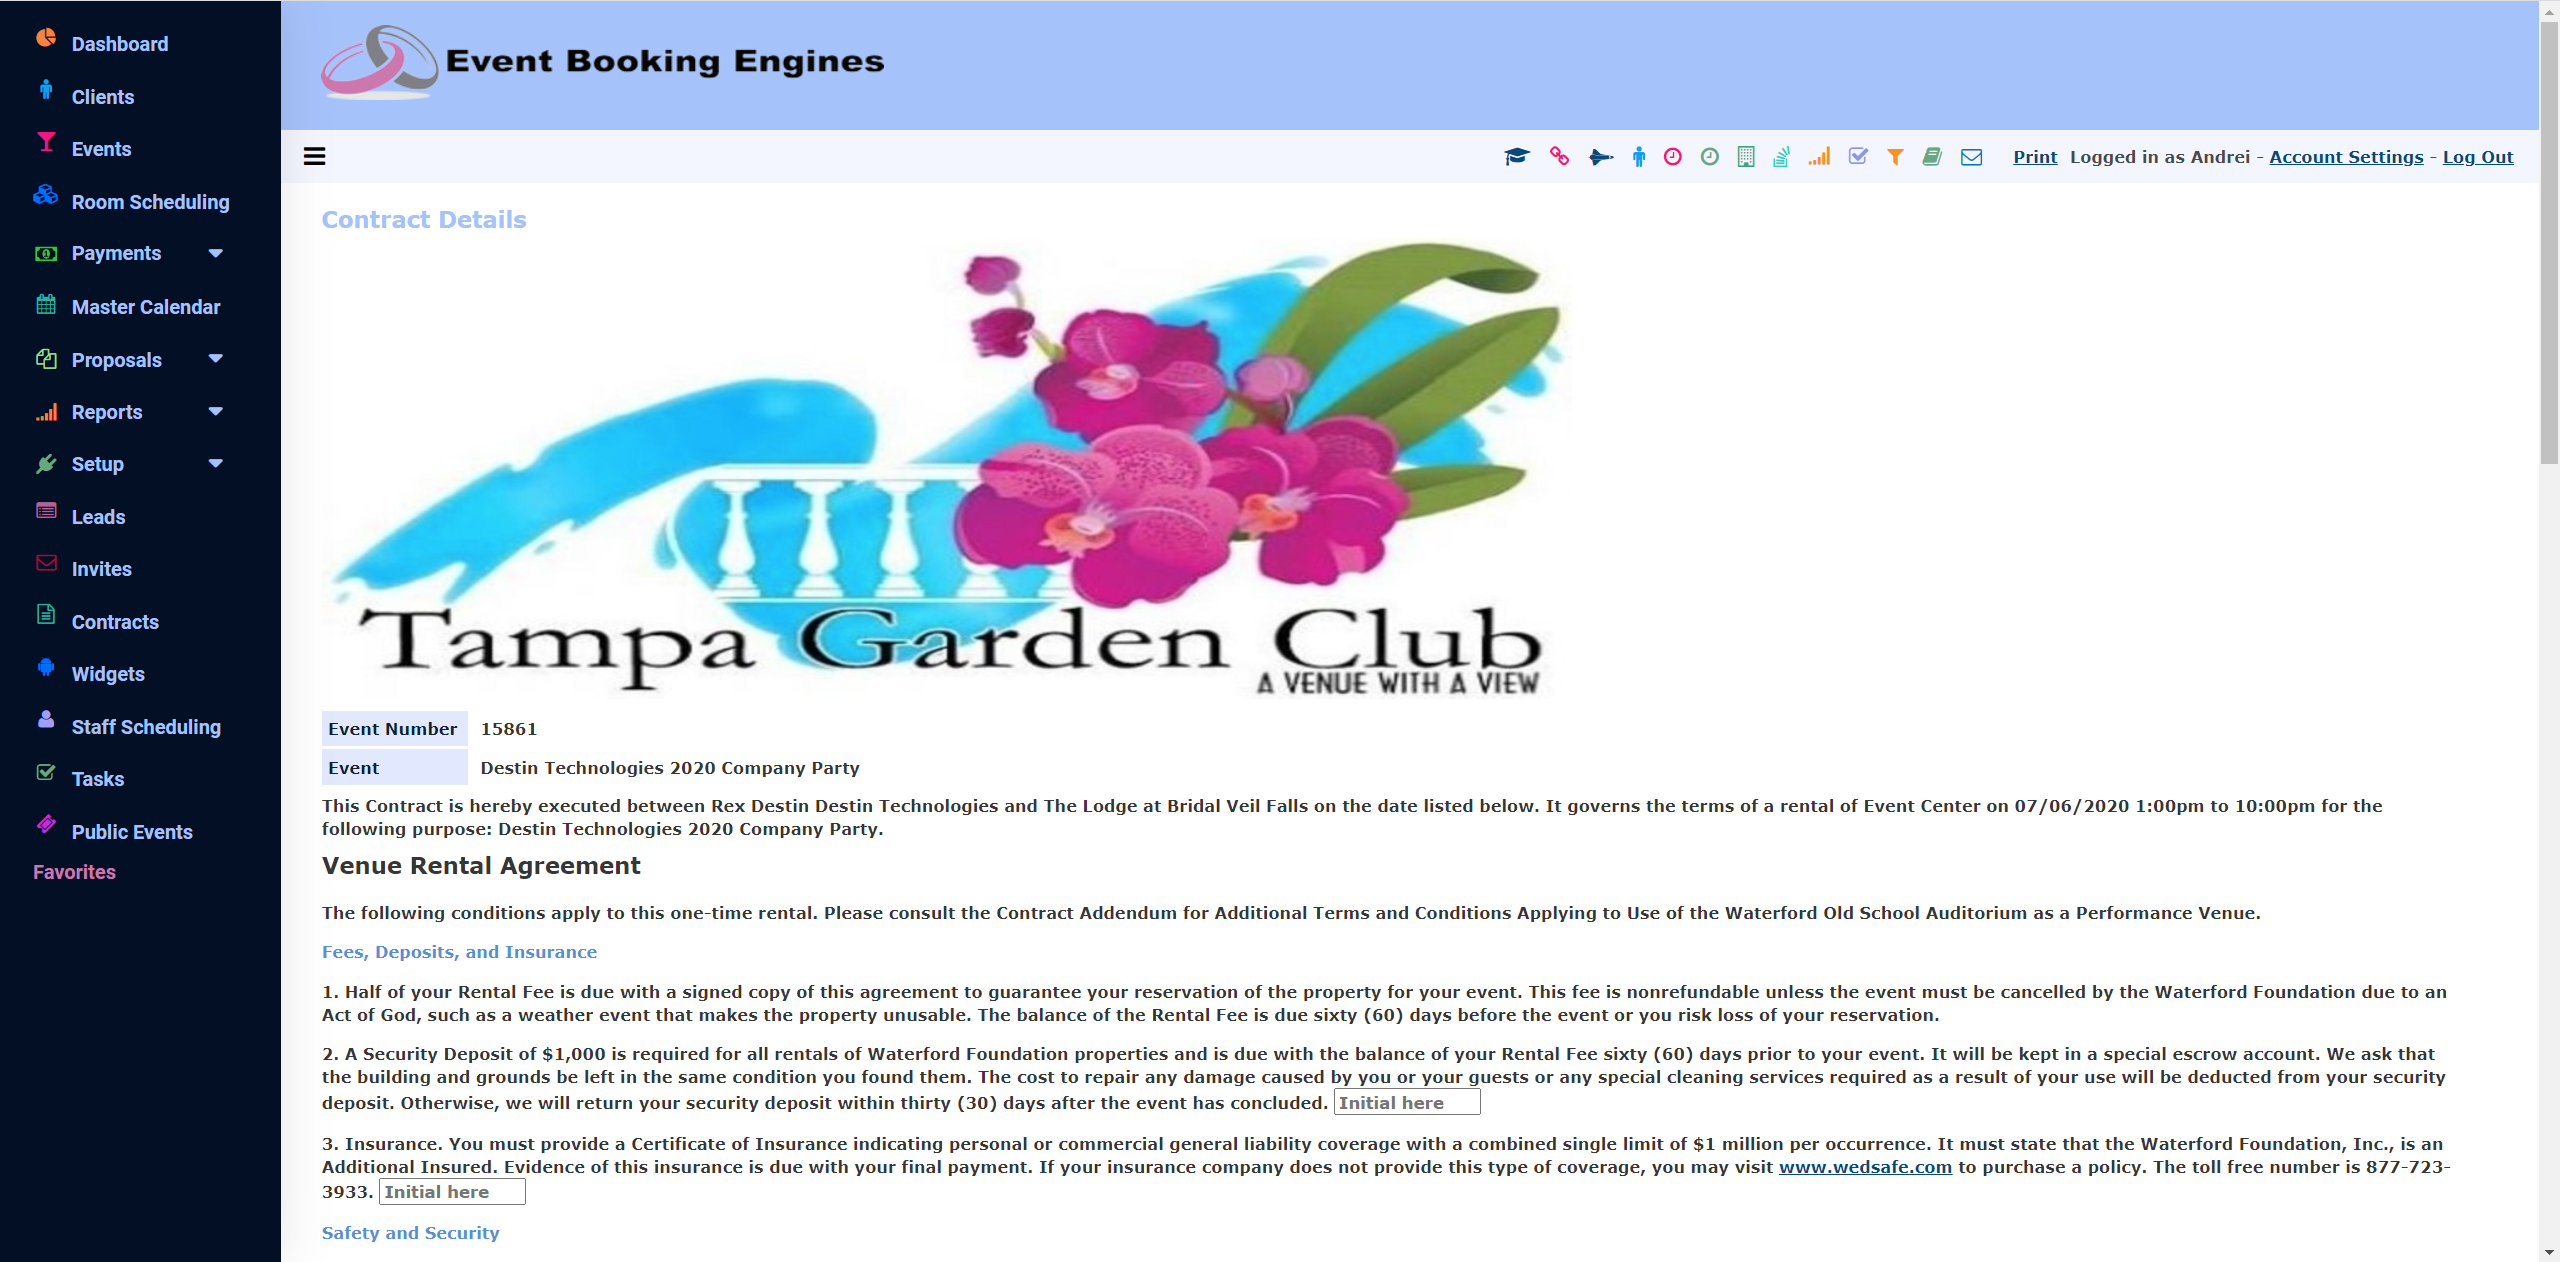 Event Booking Engines Software - Contract